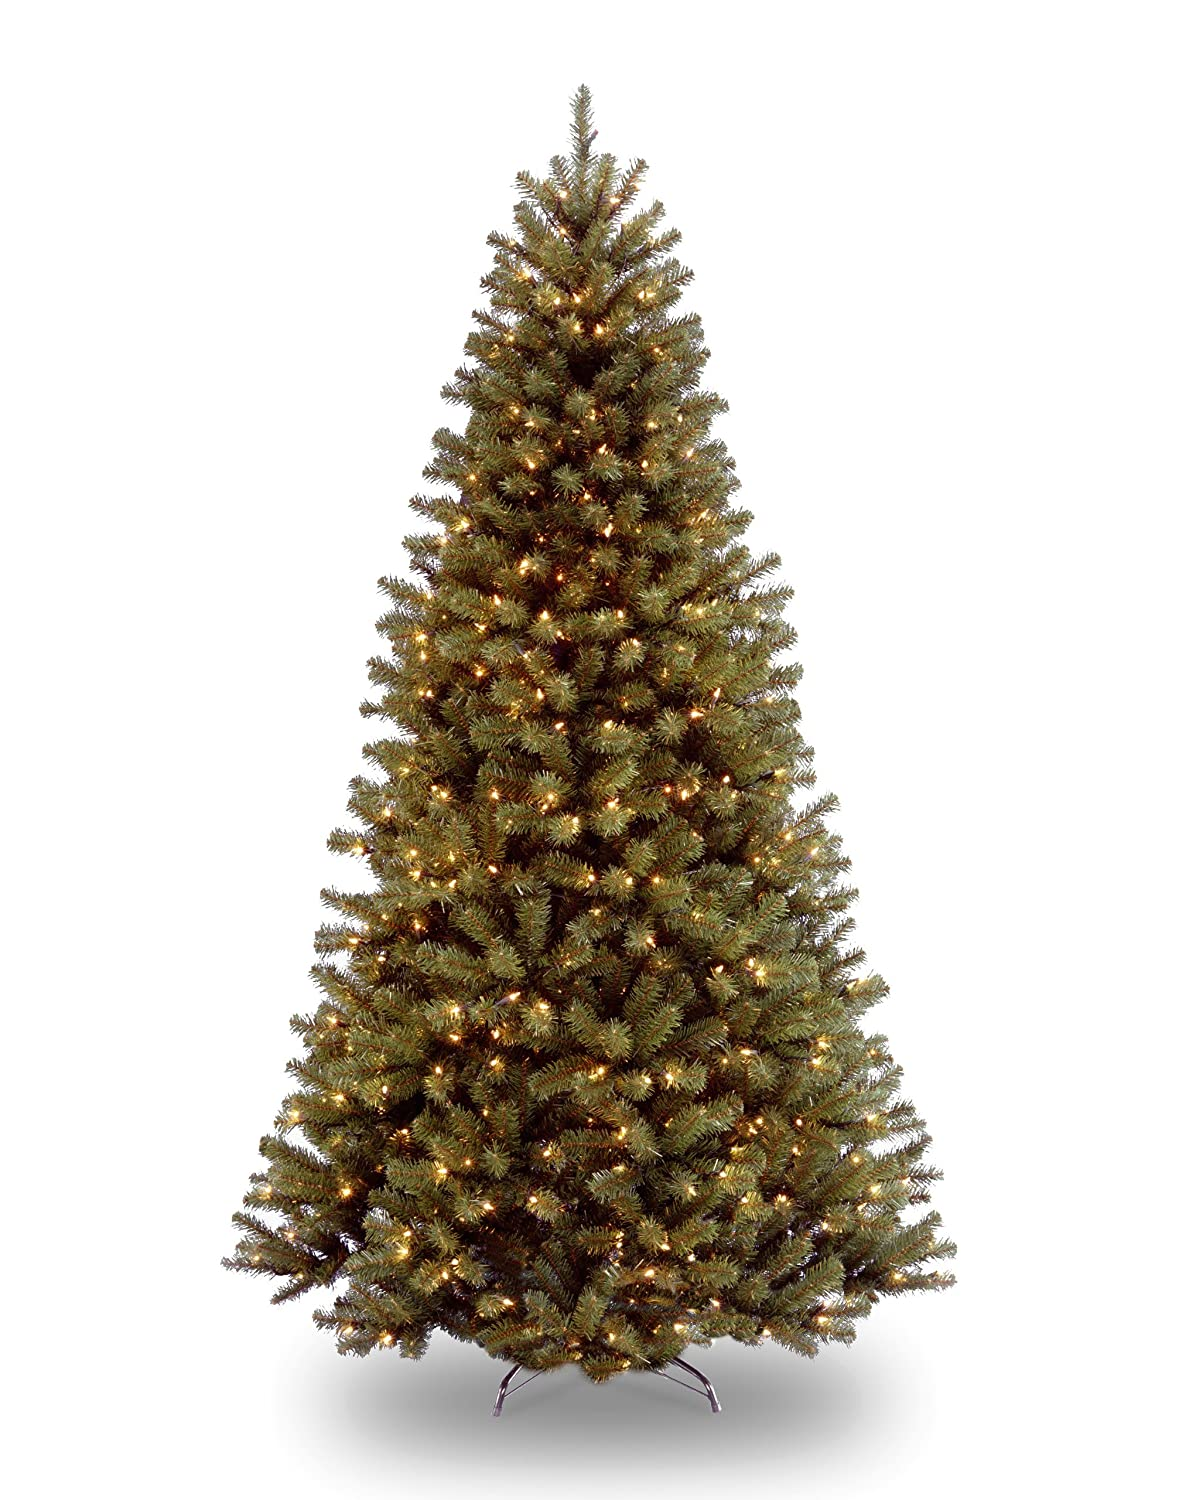 National Tree 7 1/2' North Valley Spruce Tree, Hinged, 550 Low Voltage Dual Color LED Lights with On/Off Switch (NRV7-300LD-75S) national tree company 180 31pc6ms pc3 6ms